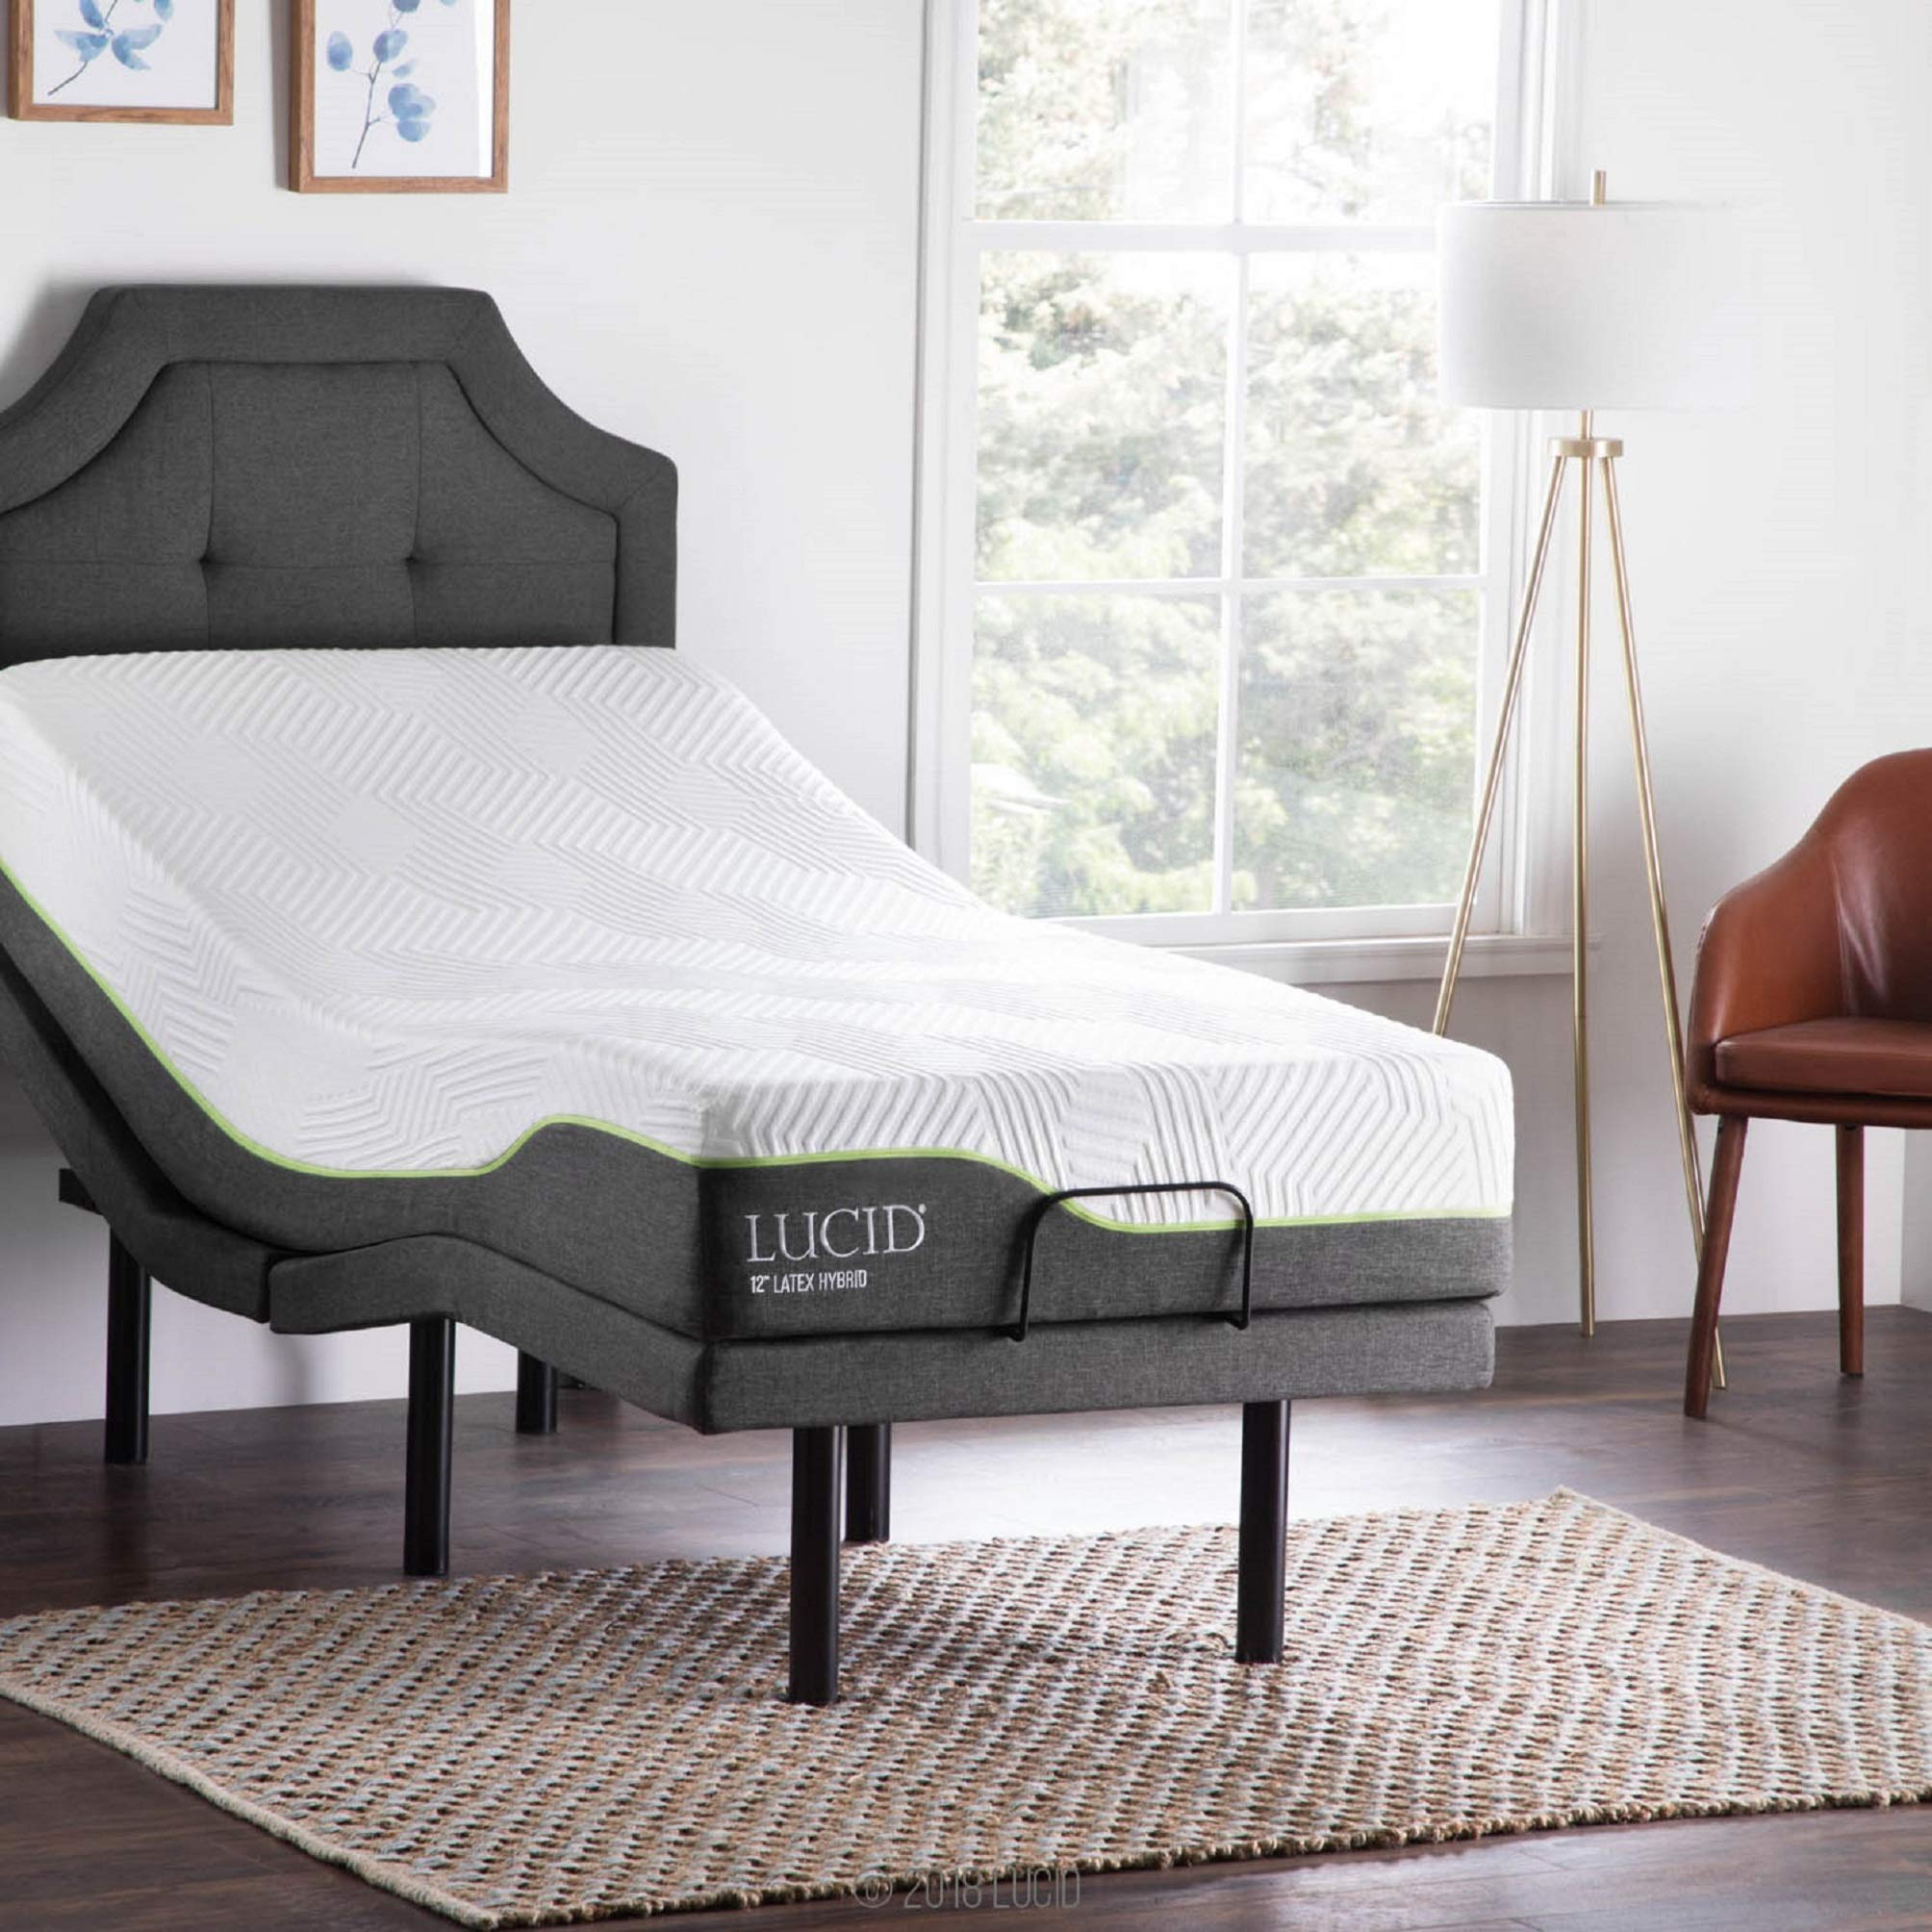 LUCID L300 Adjustable Bed Base with 12 Inch Latex Hybrid Mattress - Twin XL by LUCID